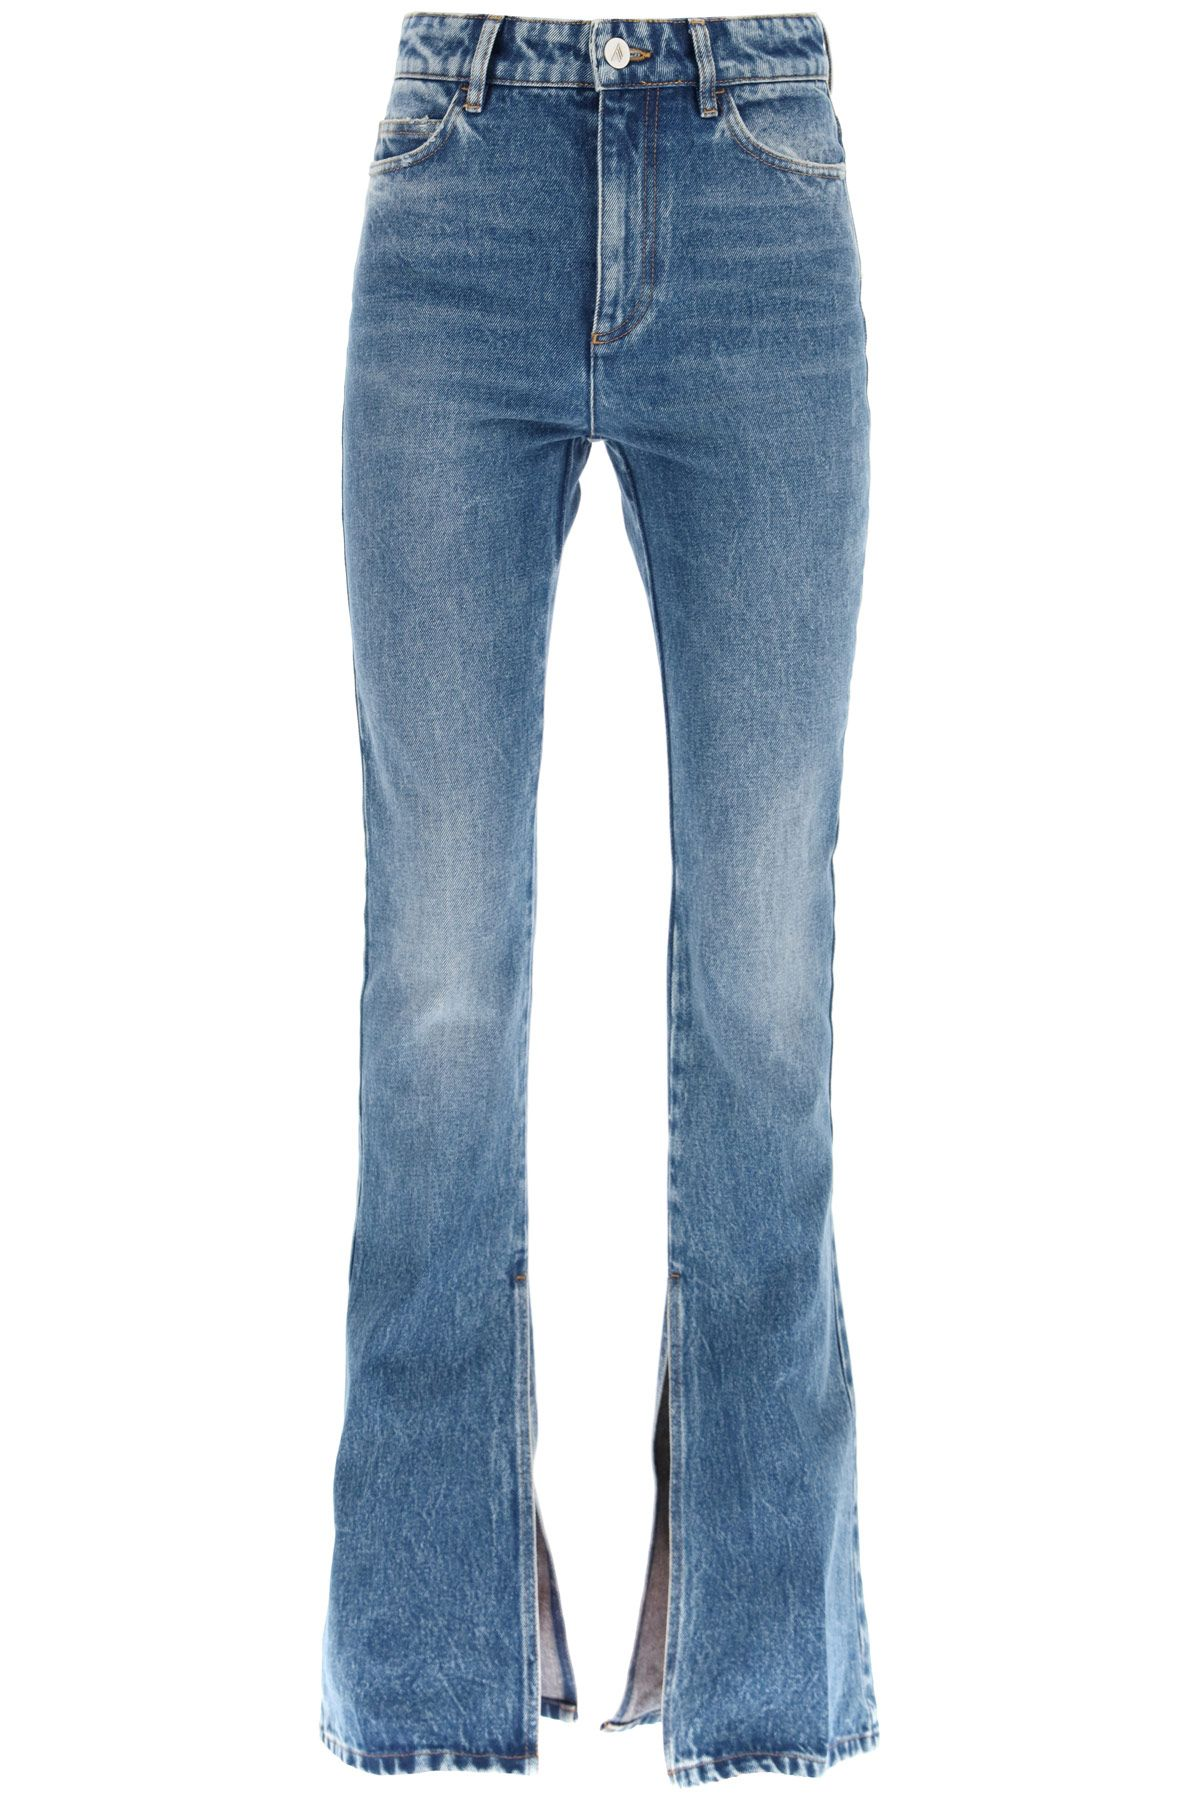 the attico clothing women flared jeans